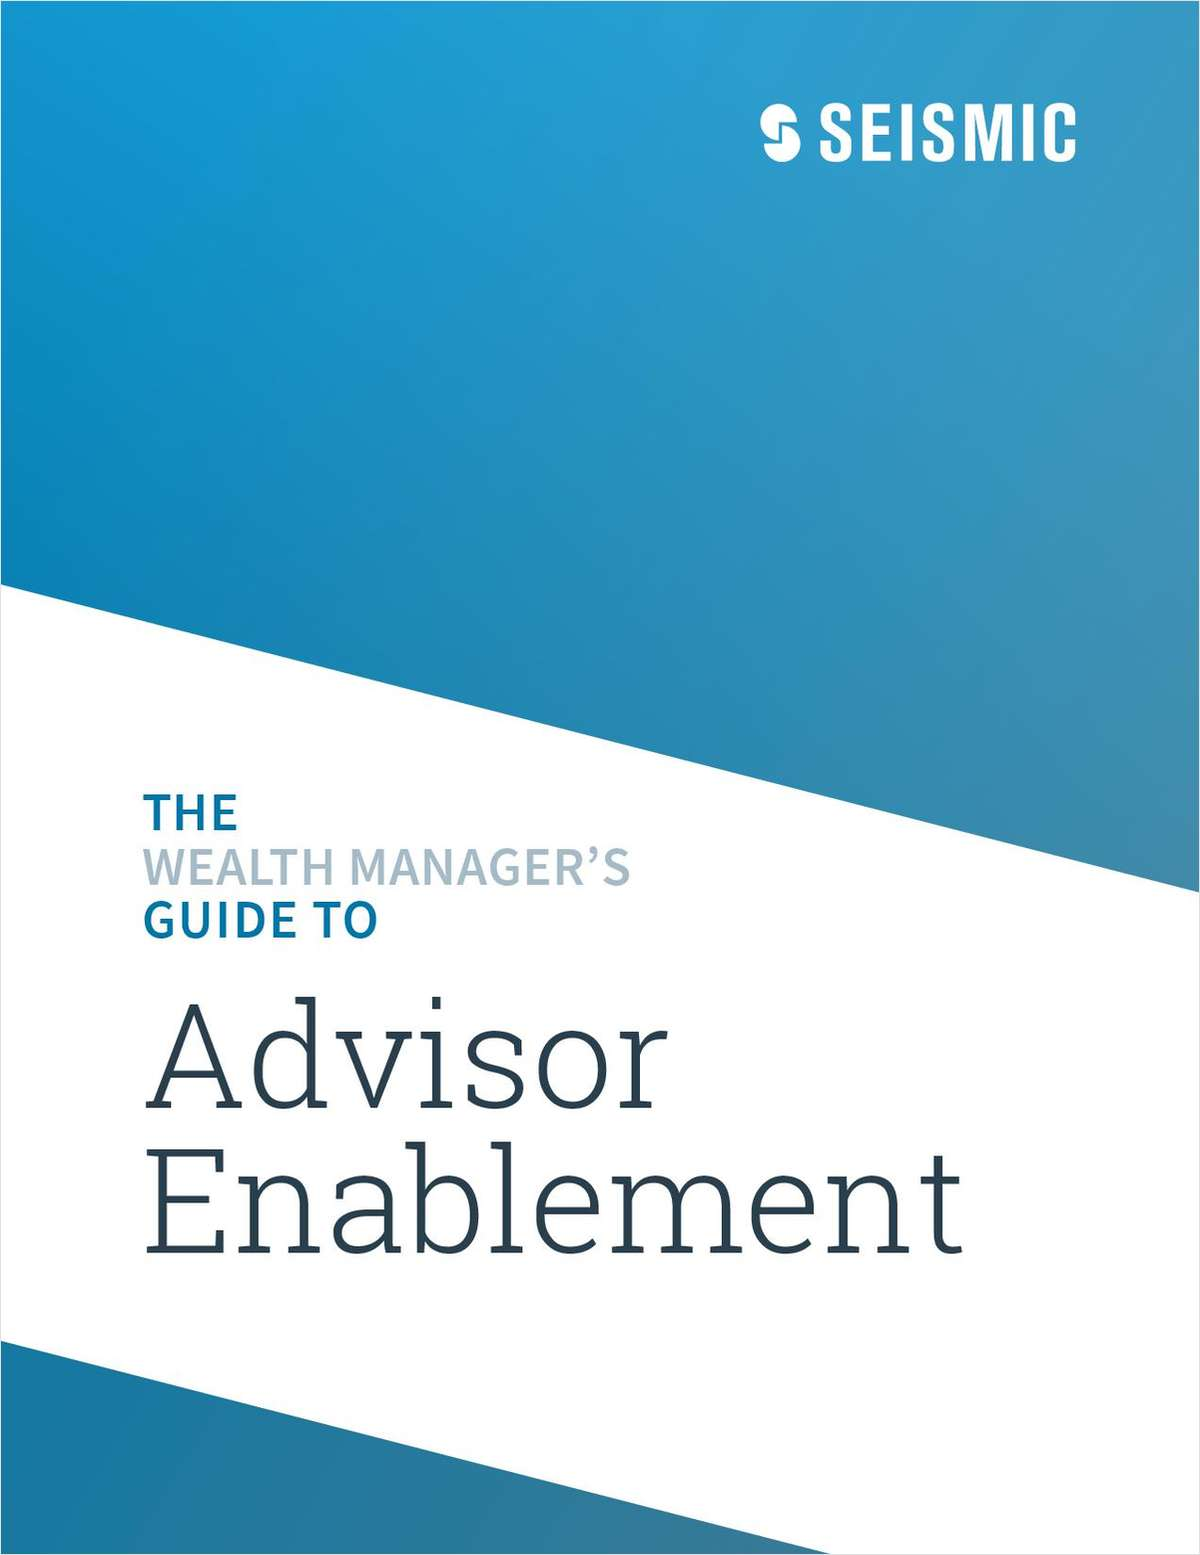 The Wealth Manager's Guide to Advisor Enablement